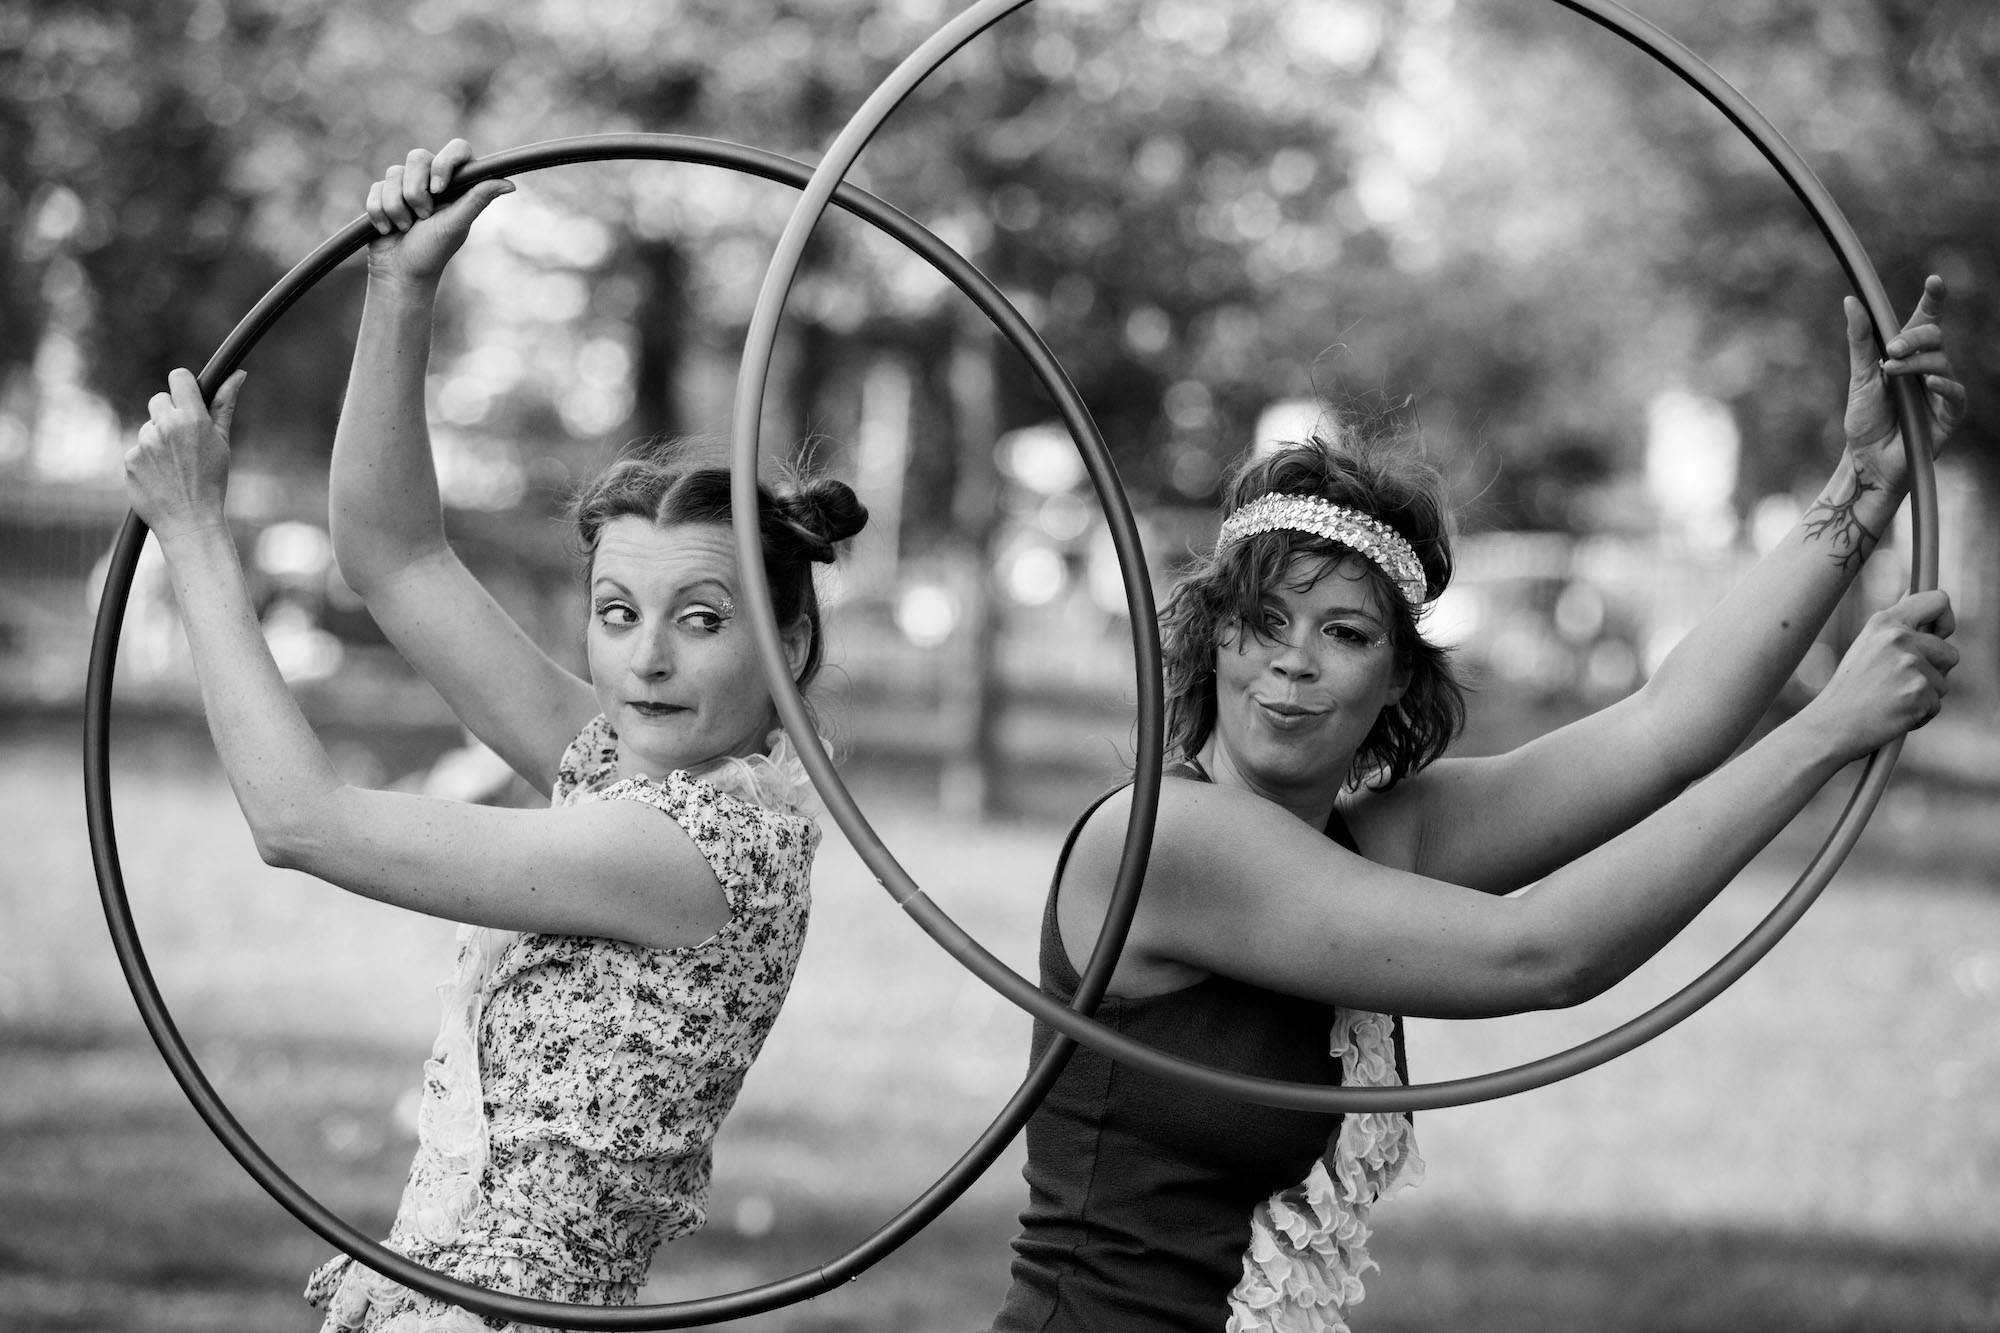 Sally & Kelly - Hula Hoop Performance